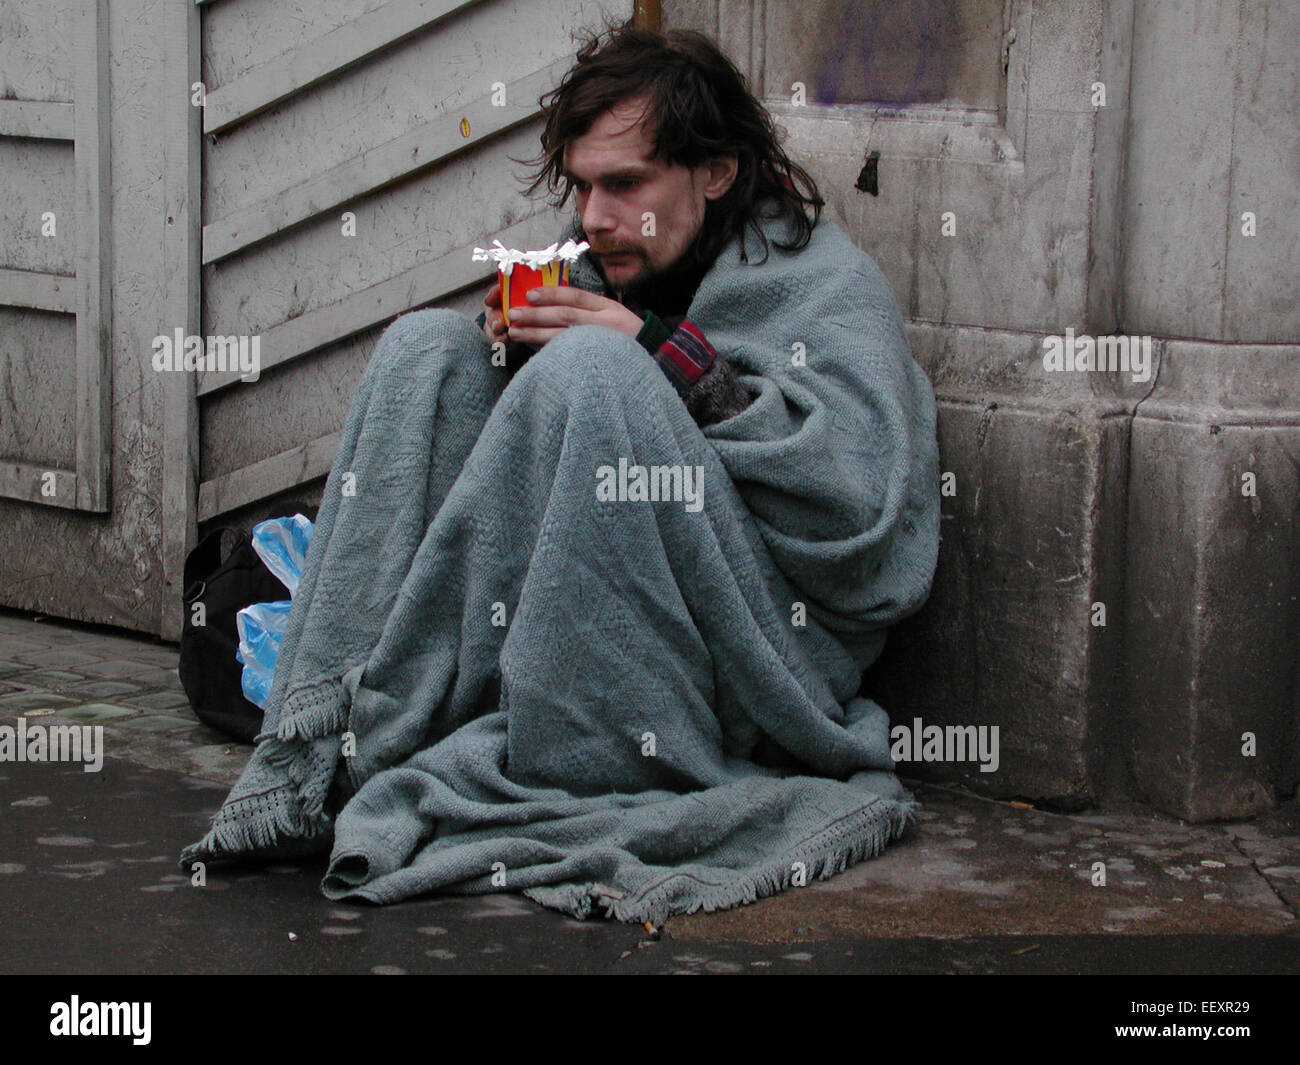 Image result for London Tramp